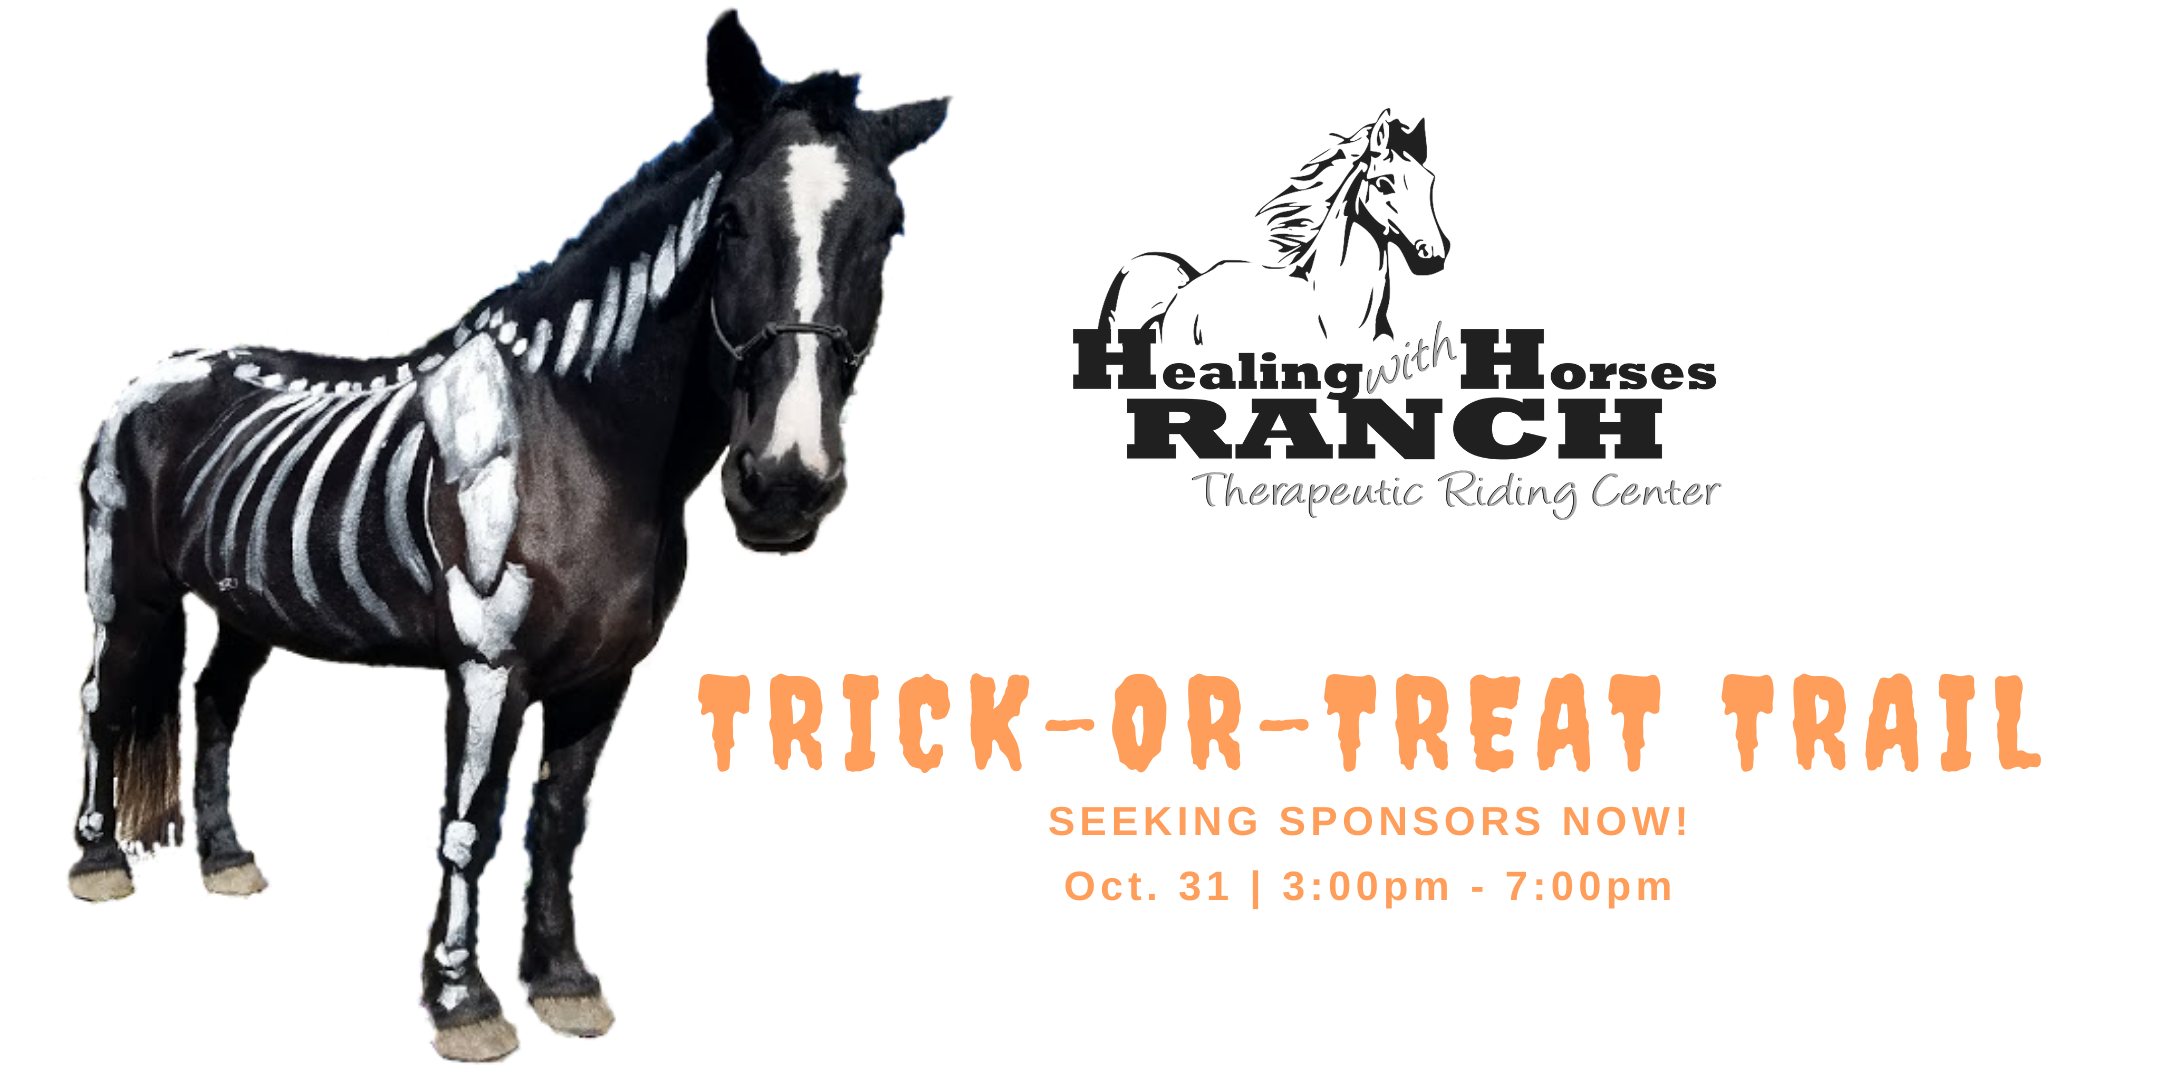 Trick or Treat Trail hosted by Healing with Horses Ranch